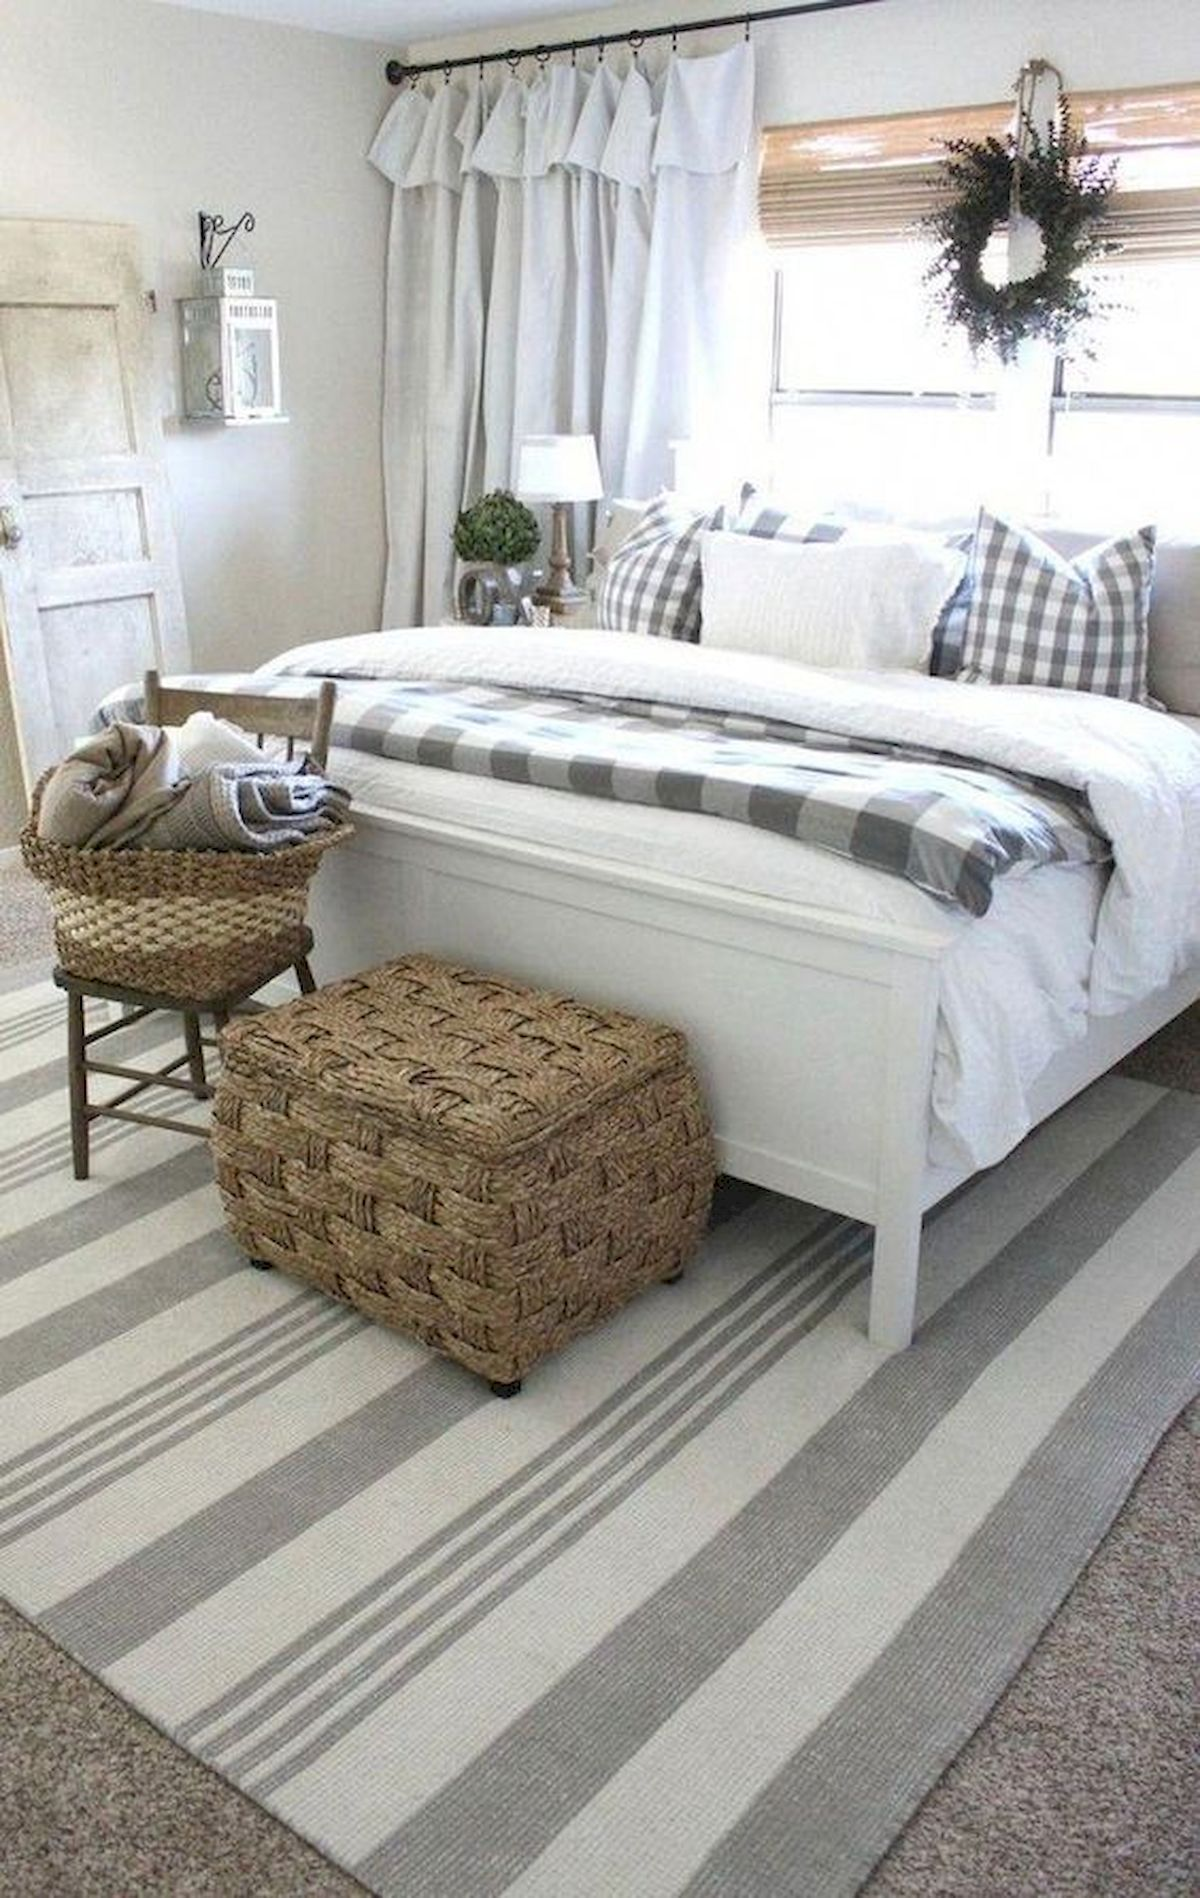 37 Fabulous Rustic Farmhouse Bedroom Decor Ideas #farmhousedecor